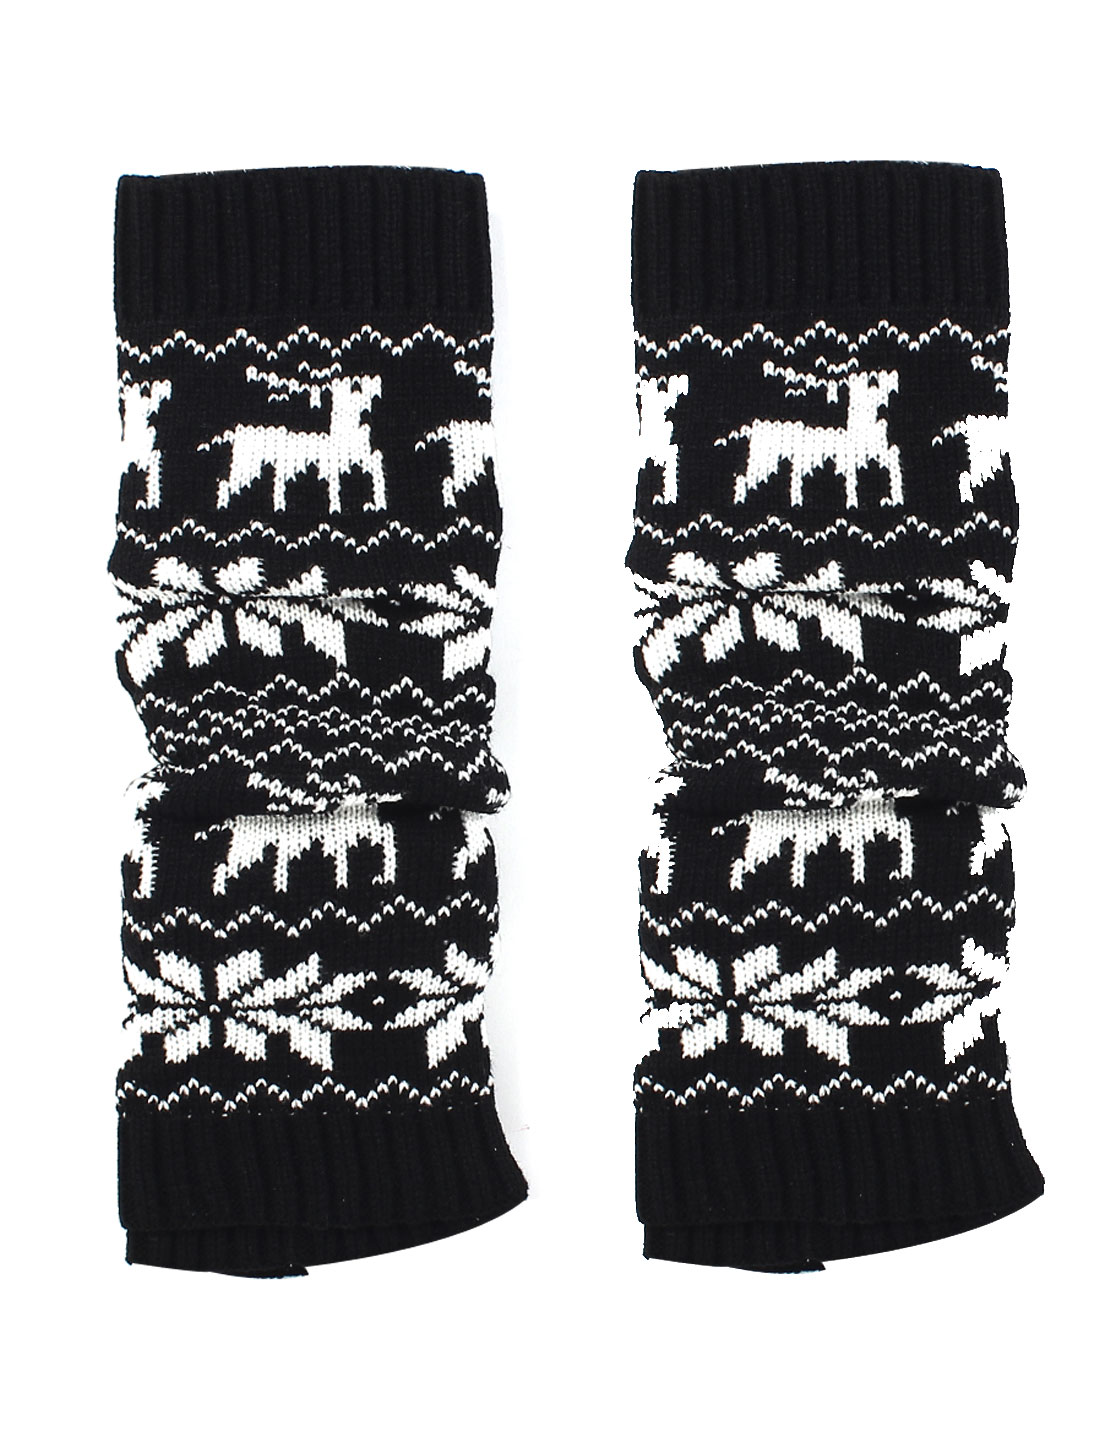 Christmas Reindeer Print Winter Knitted Leg Warmers Boot Cover Socks White Black